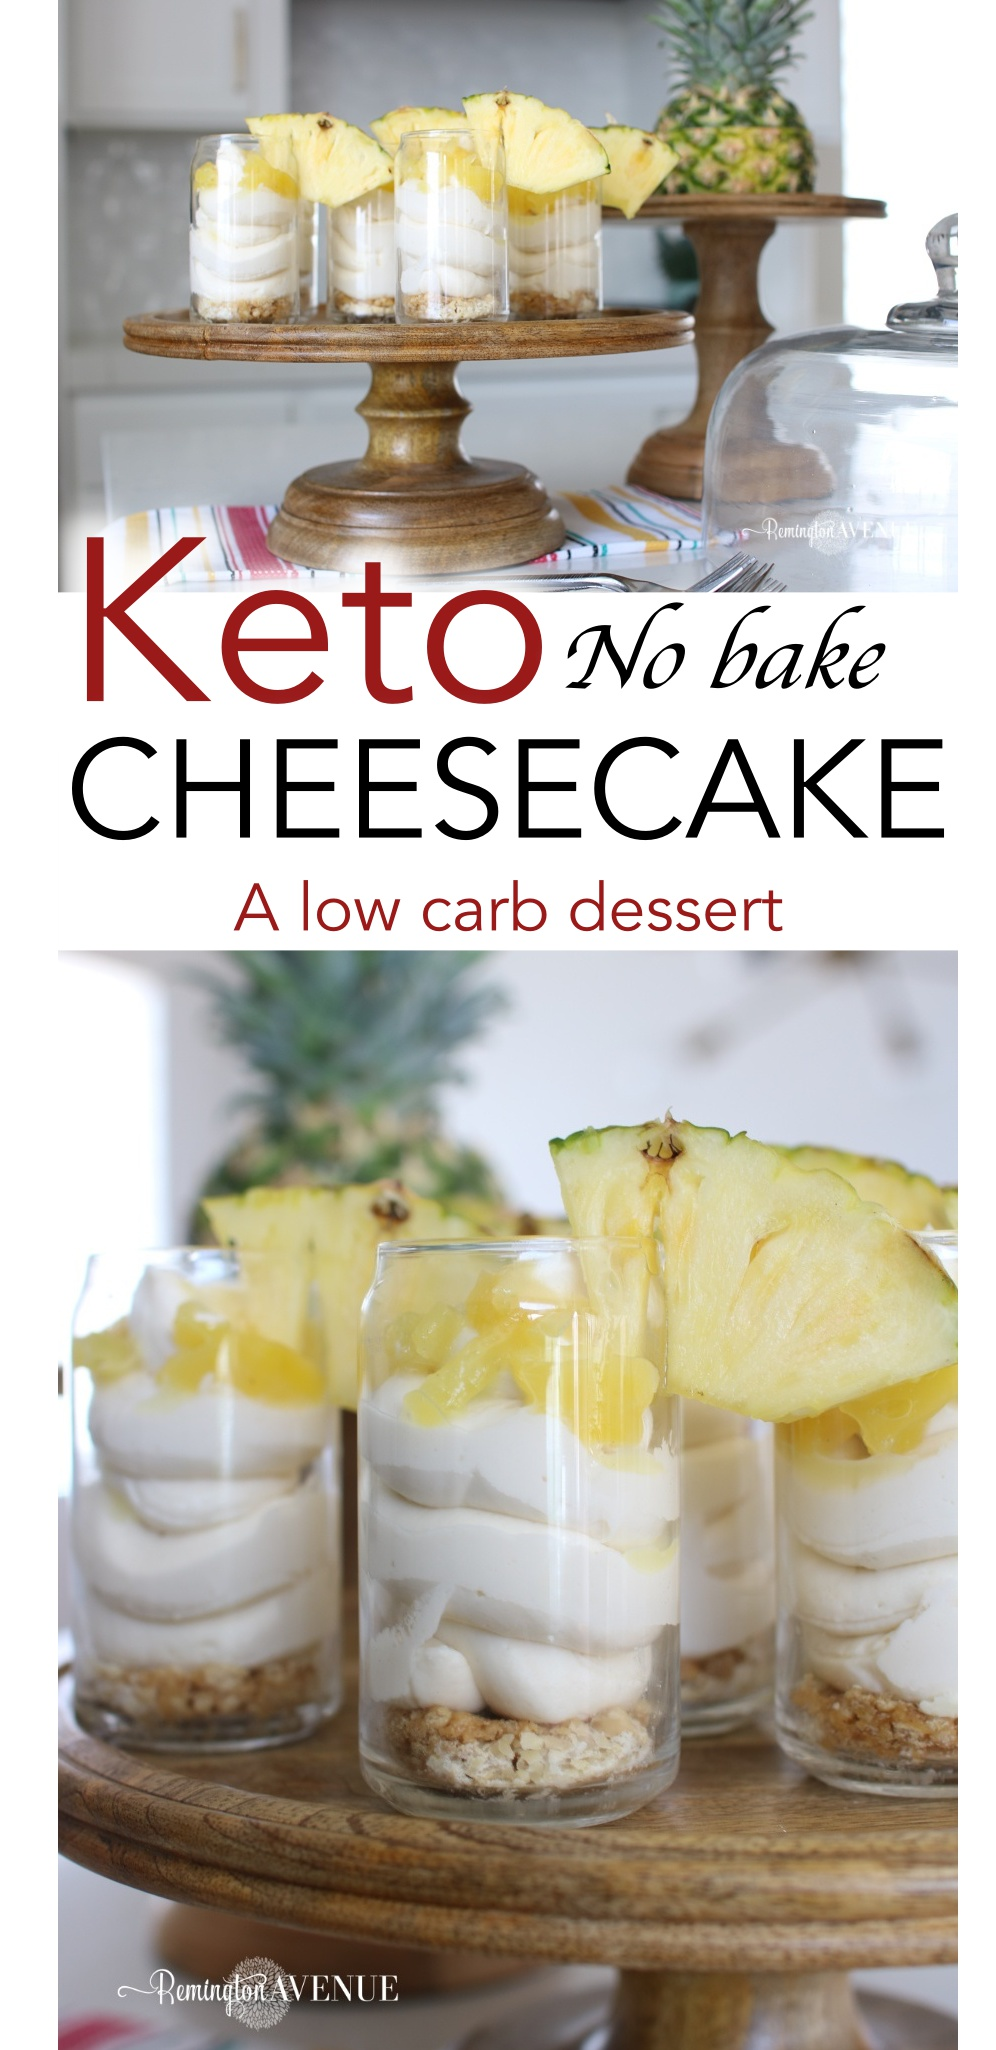 KETO NO BAKE CHEESECAKE CUPS WITH PINEAPPLE DRIZZLE - A LOW CARB DESSERT RECIPE